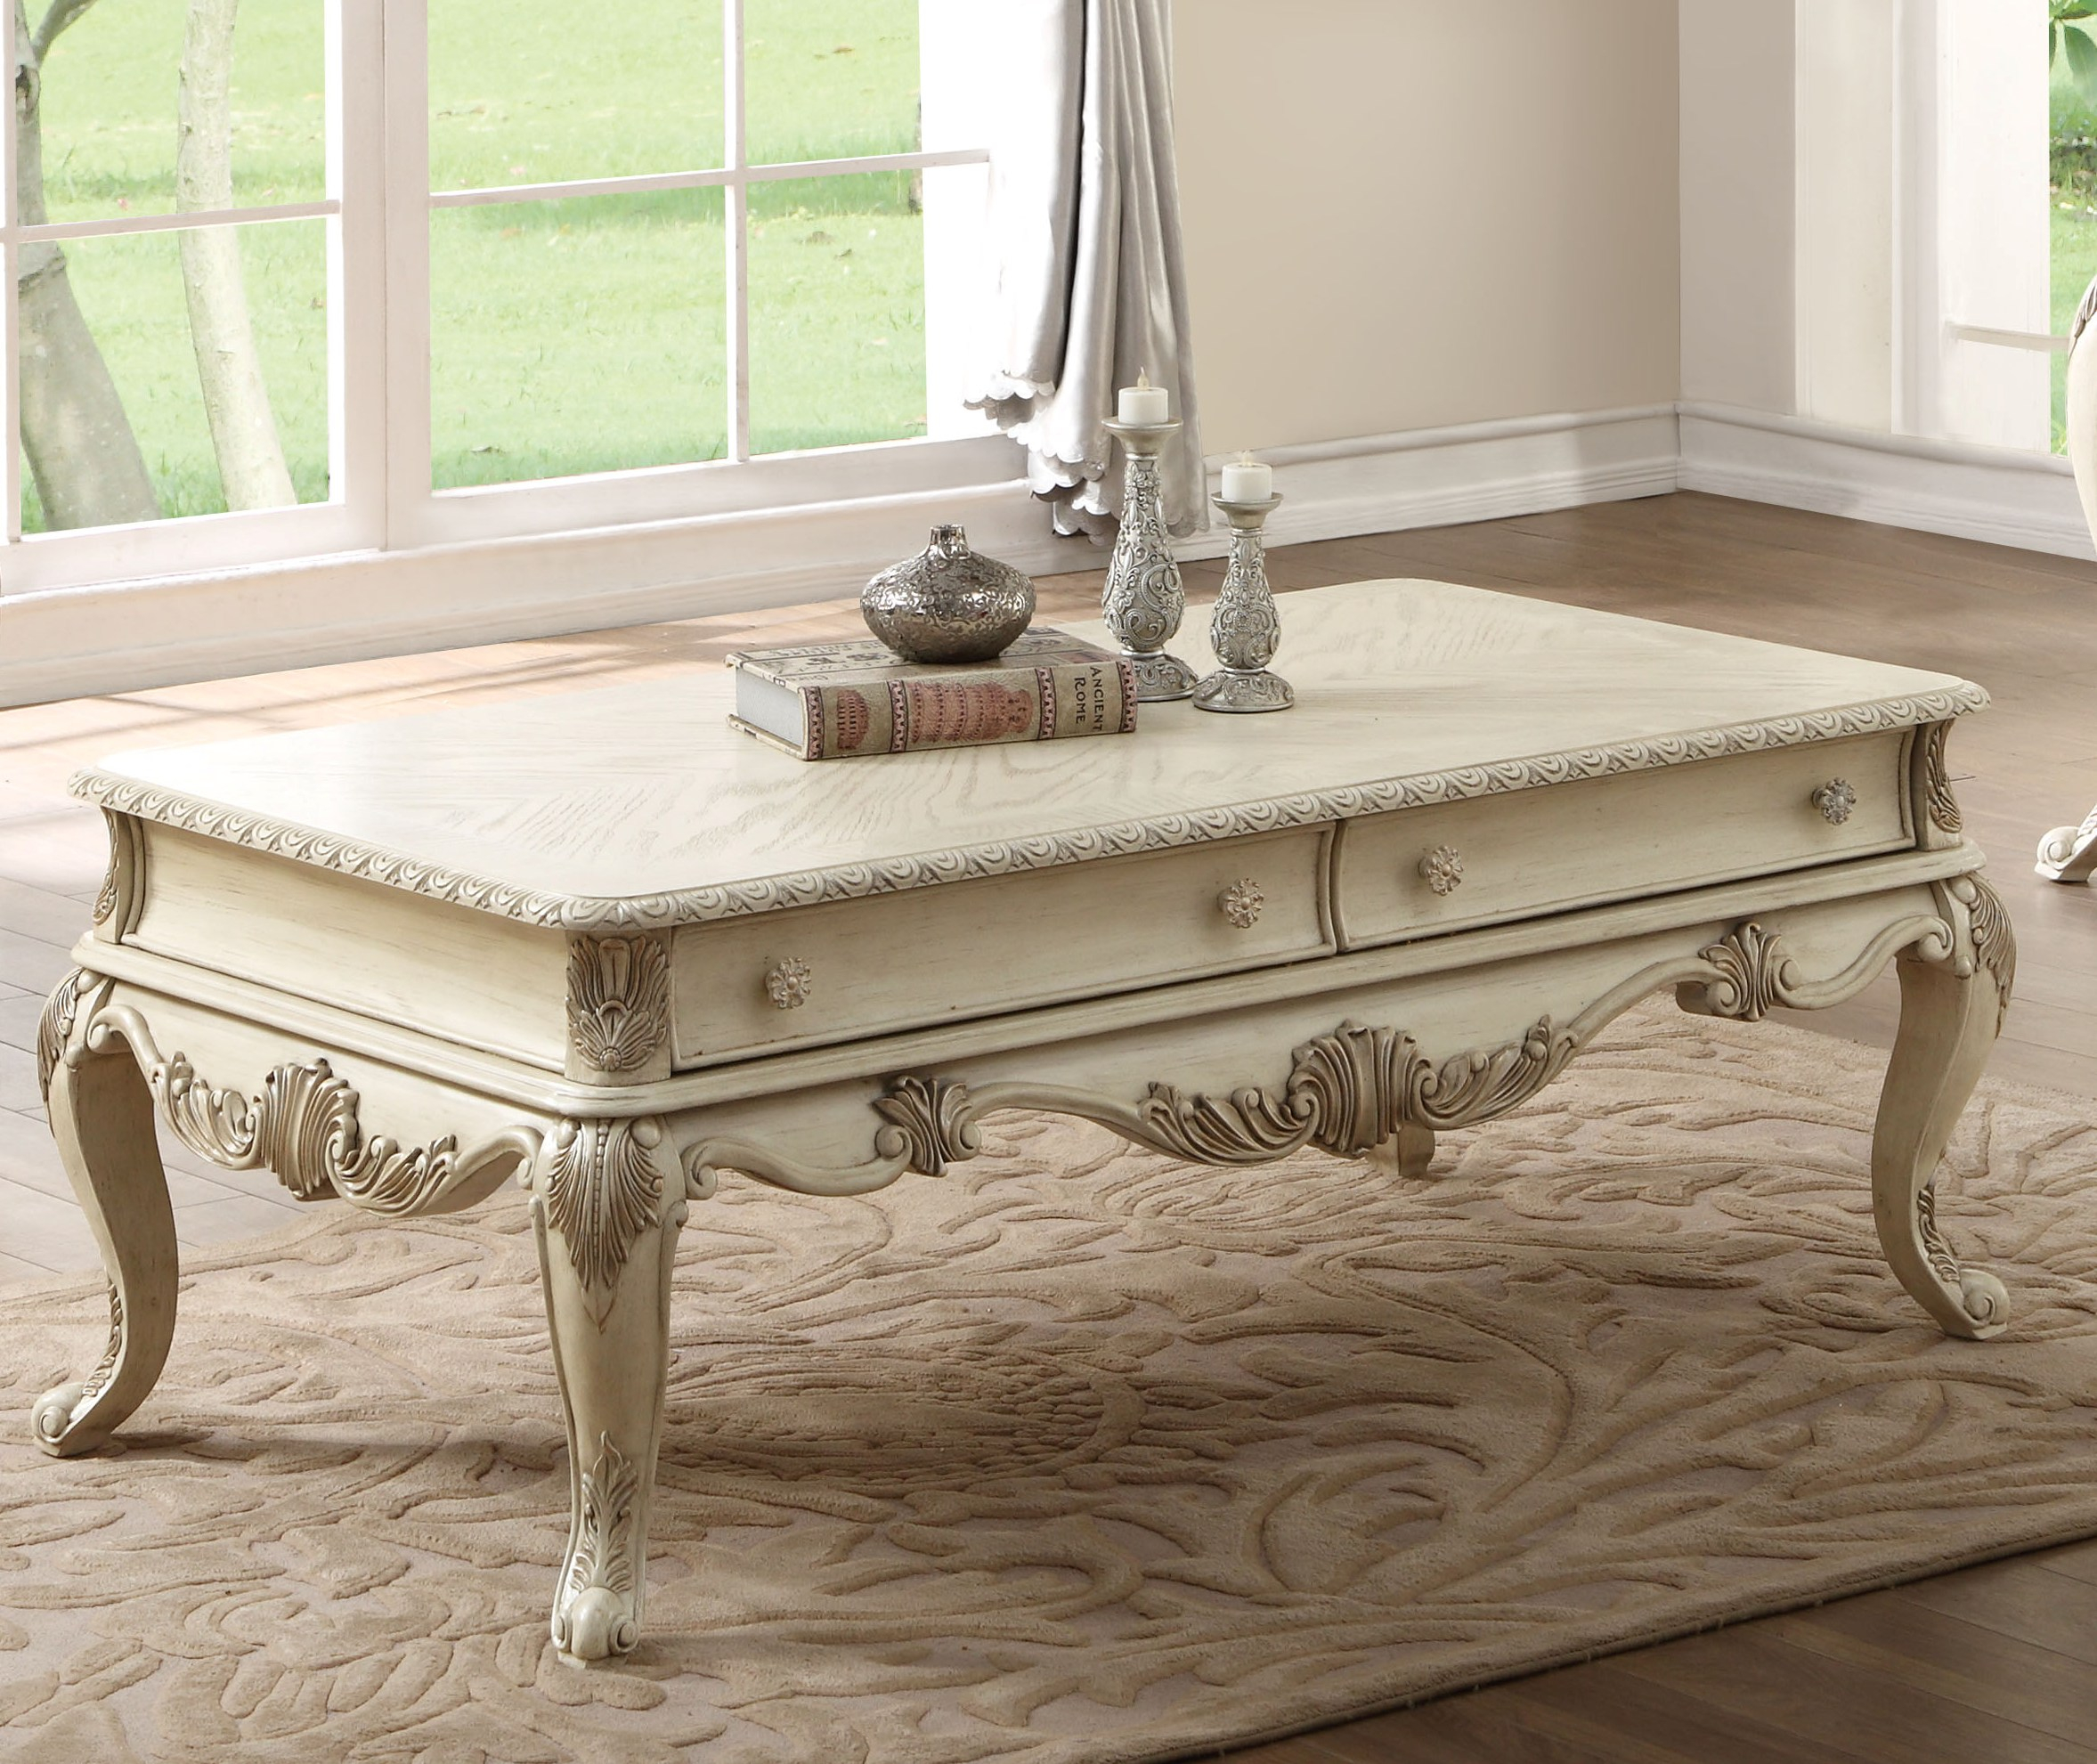 Acme Furniture Ragenardus Antique White Coffee Table The Classy Home for sizing 2355 X 1981